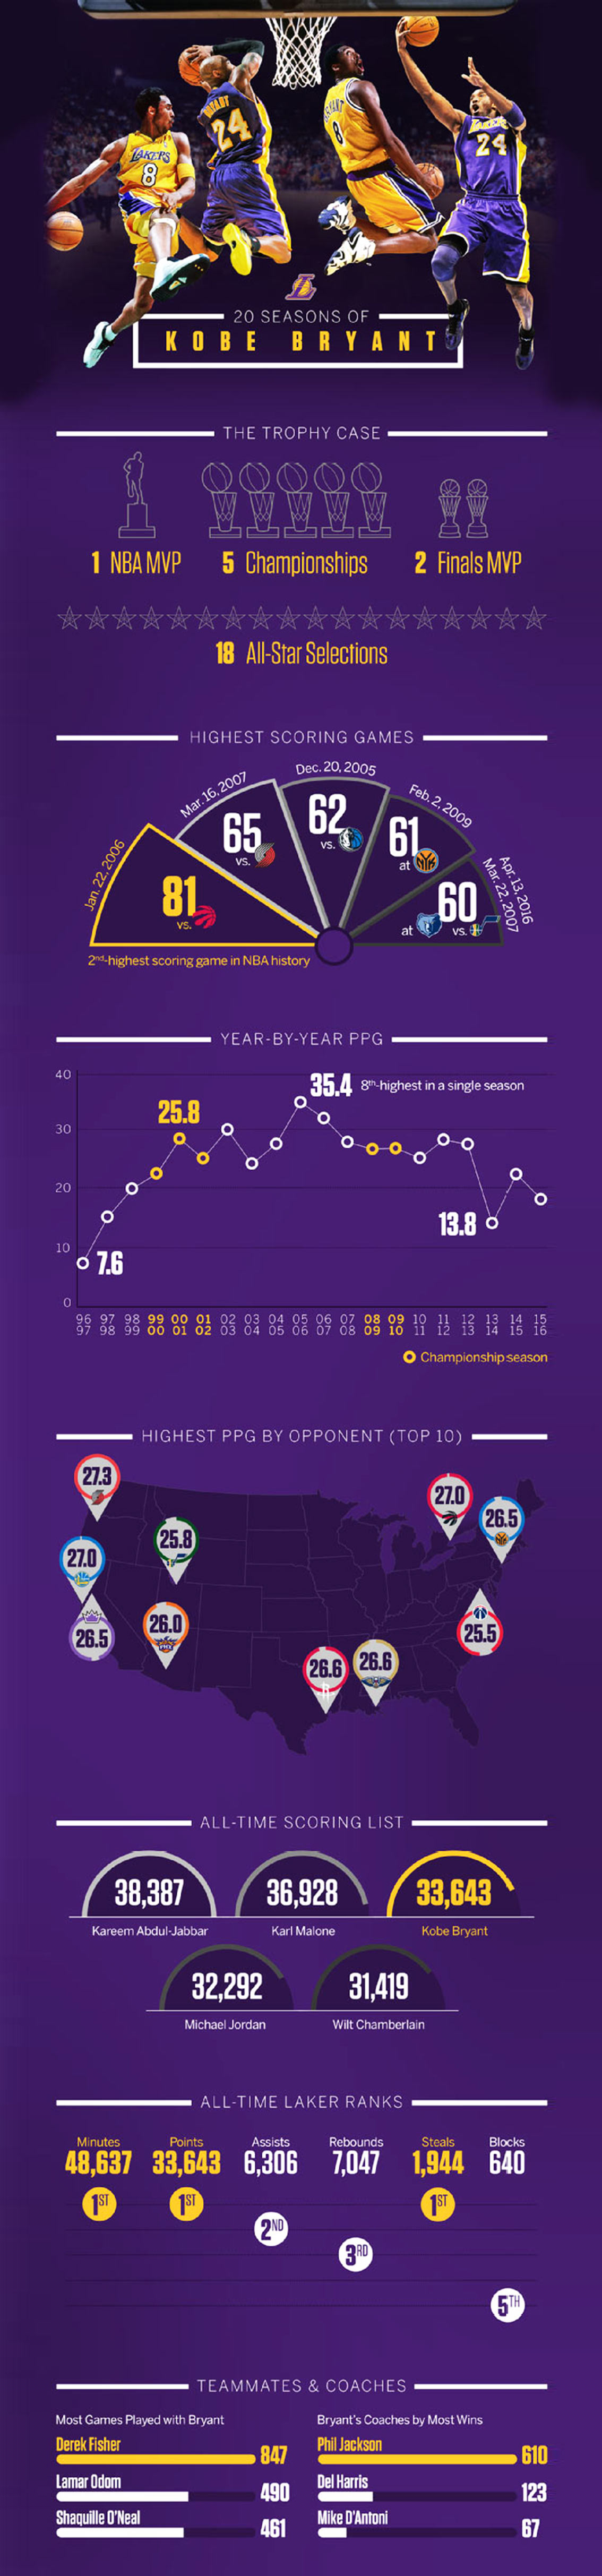 20 Seasons of Kobe Bryant - Basketball Infographic